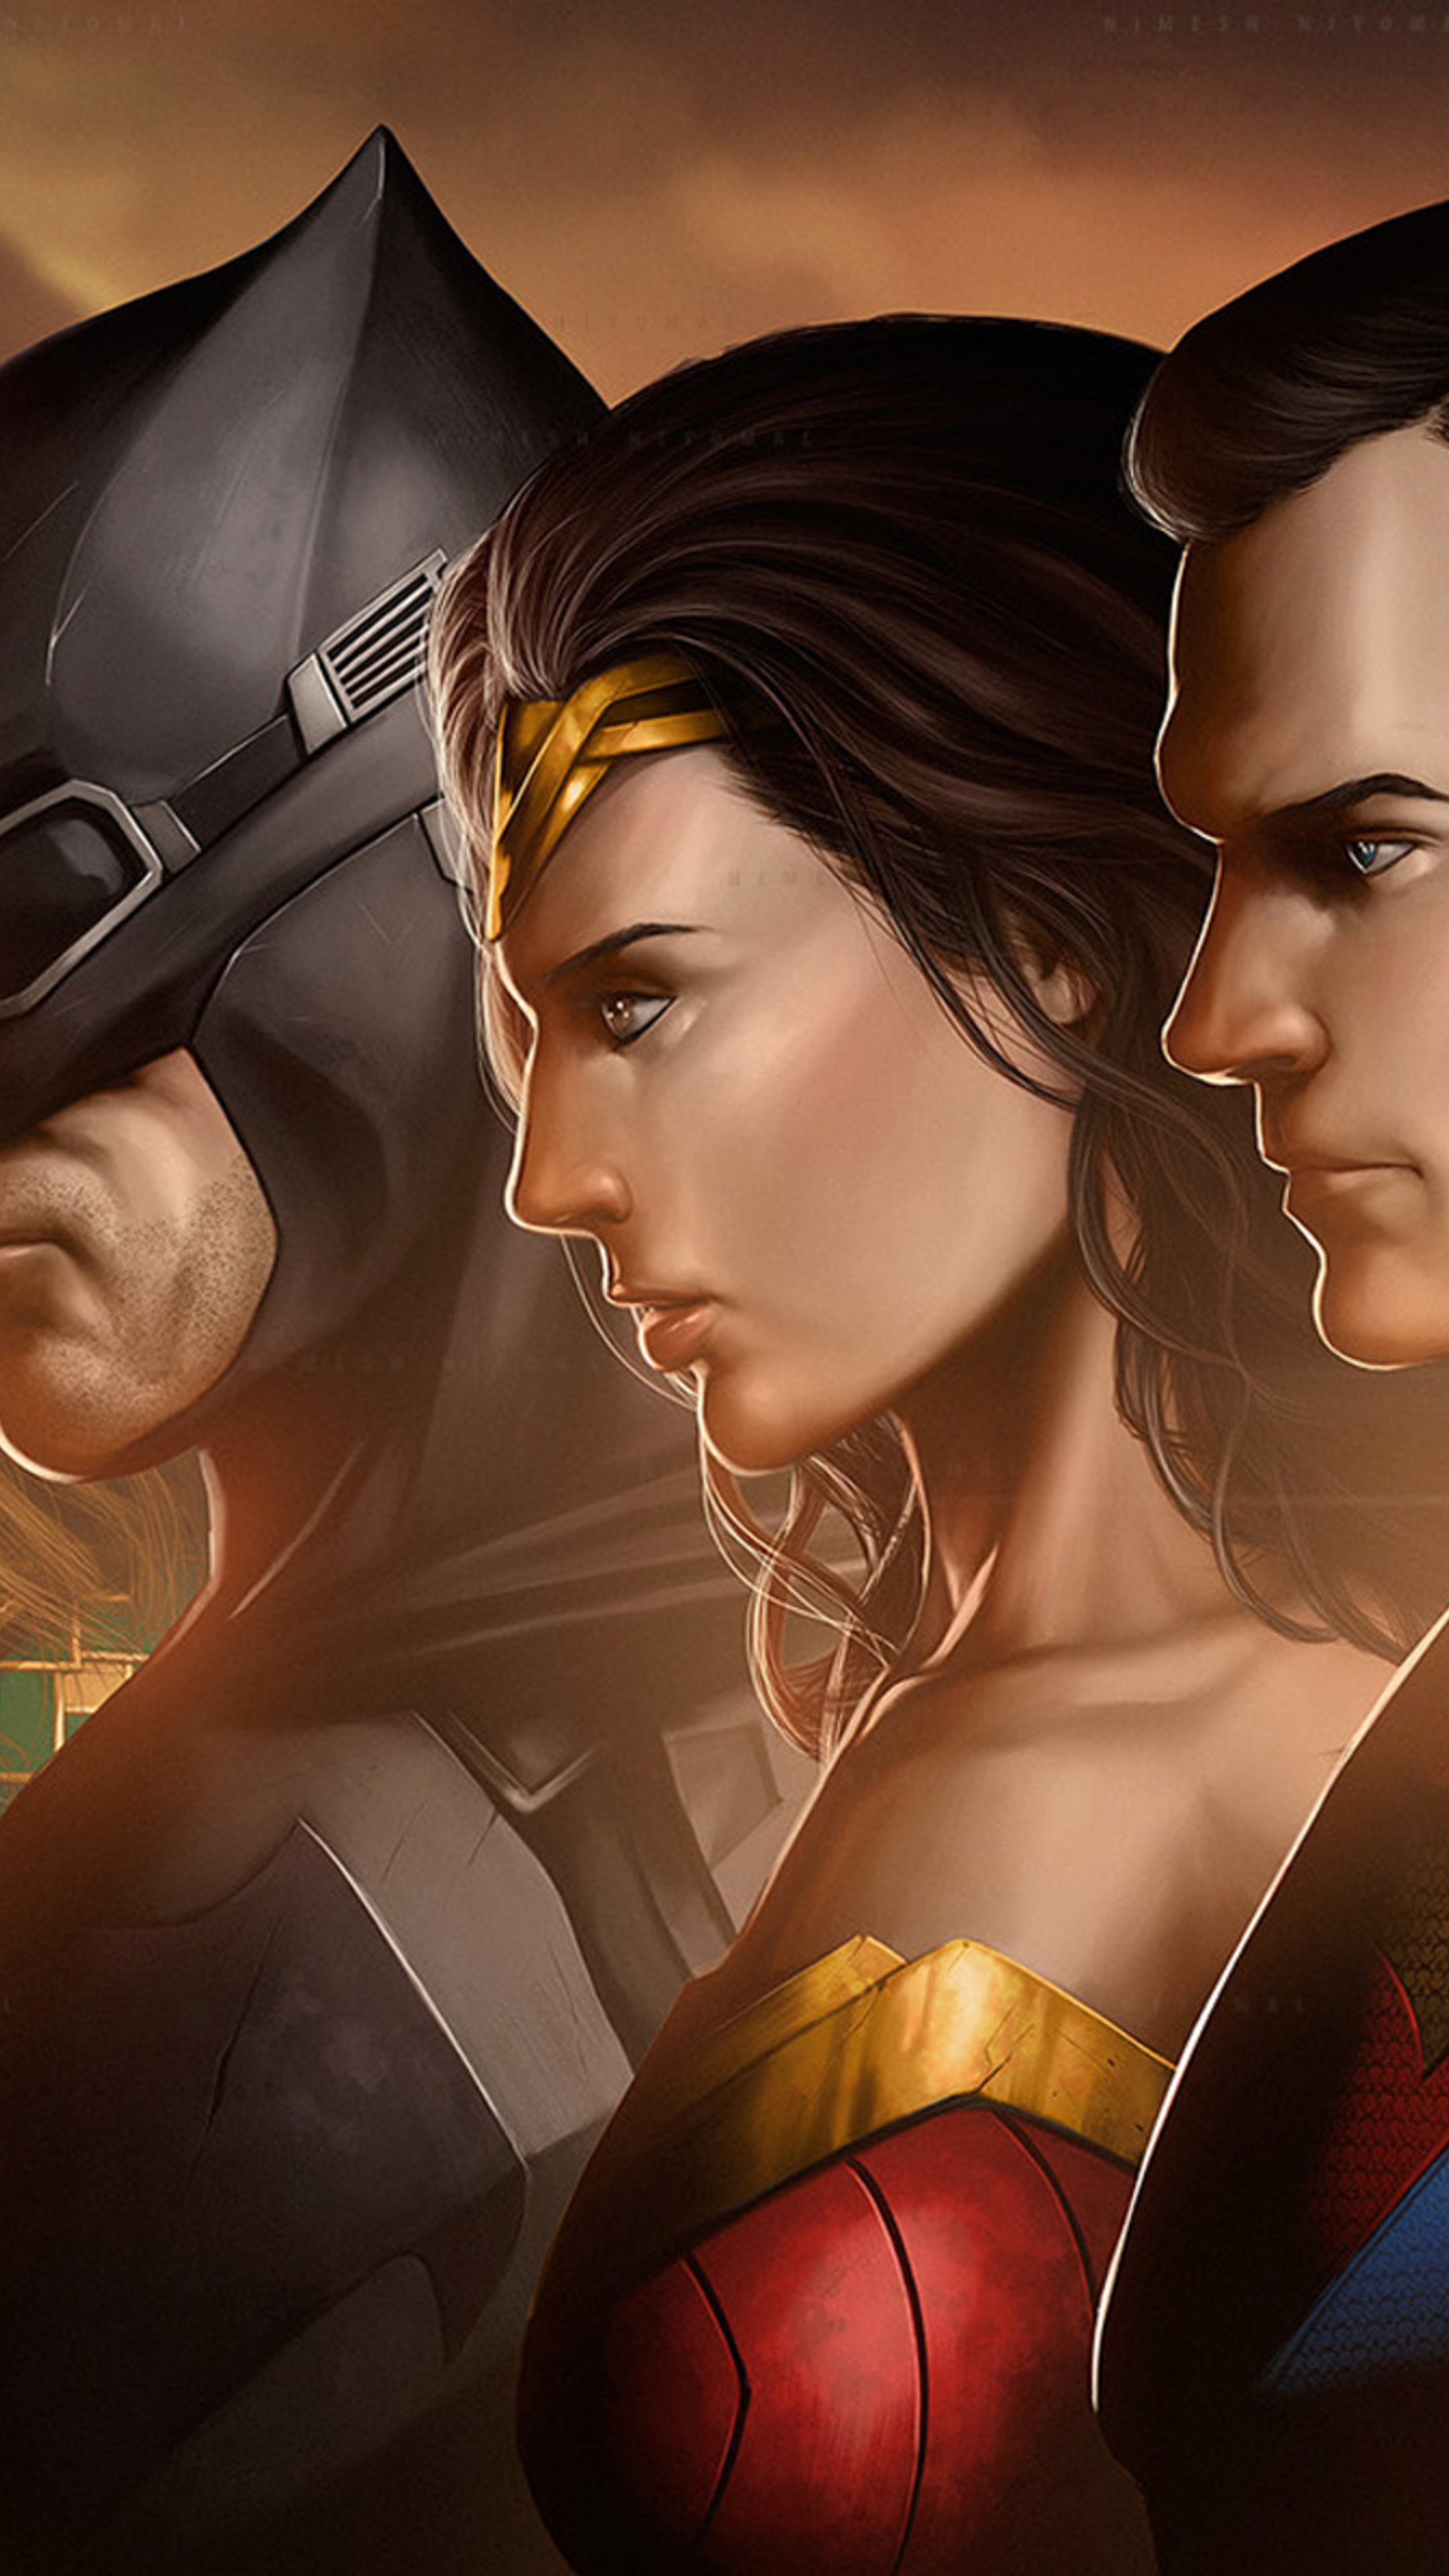 justice-league-movie-artwork-jg.jpg